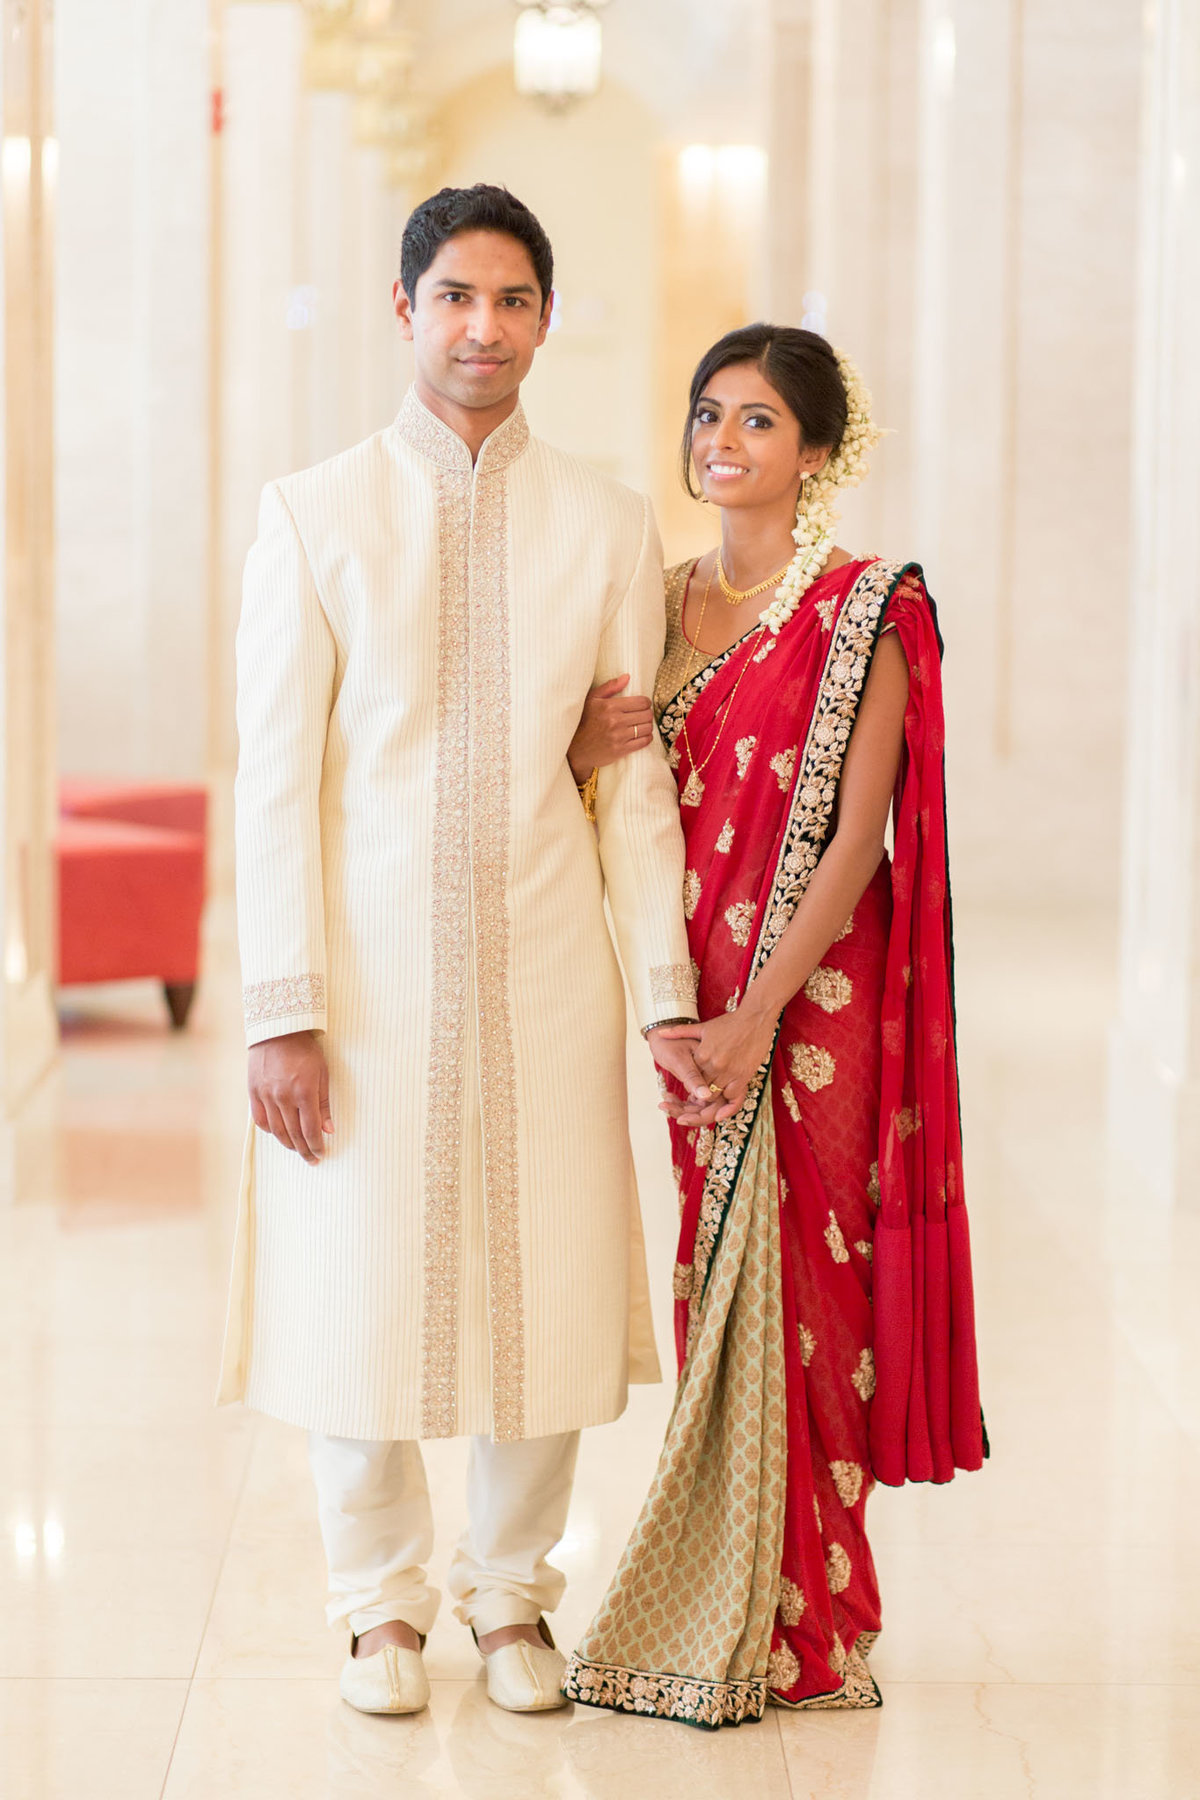 Harold-Washington-Library-South-Asian-Wedding-047